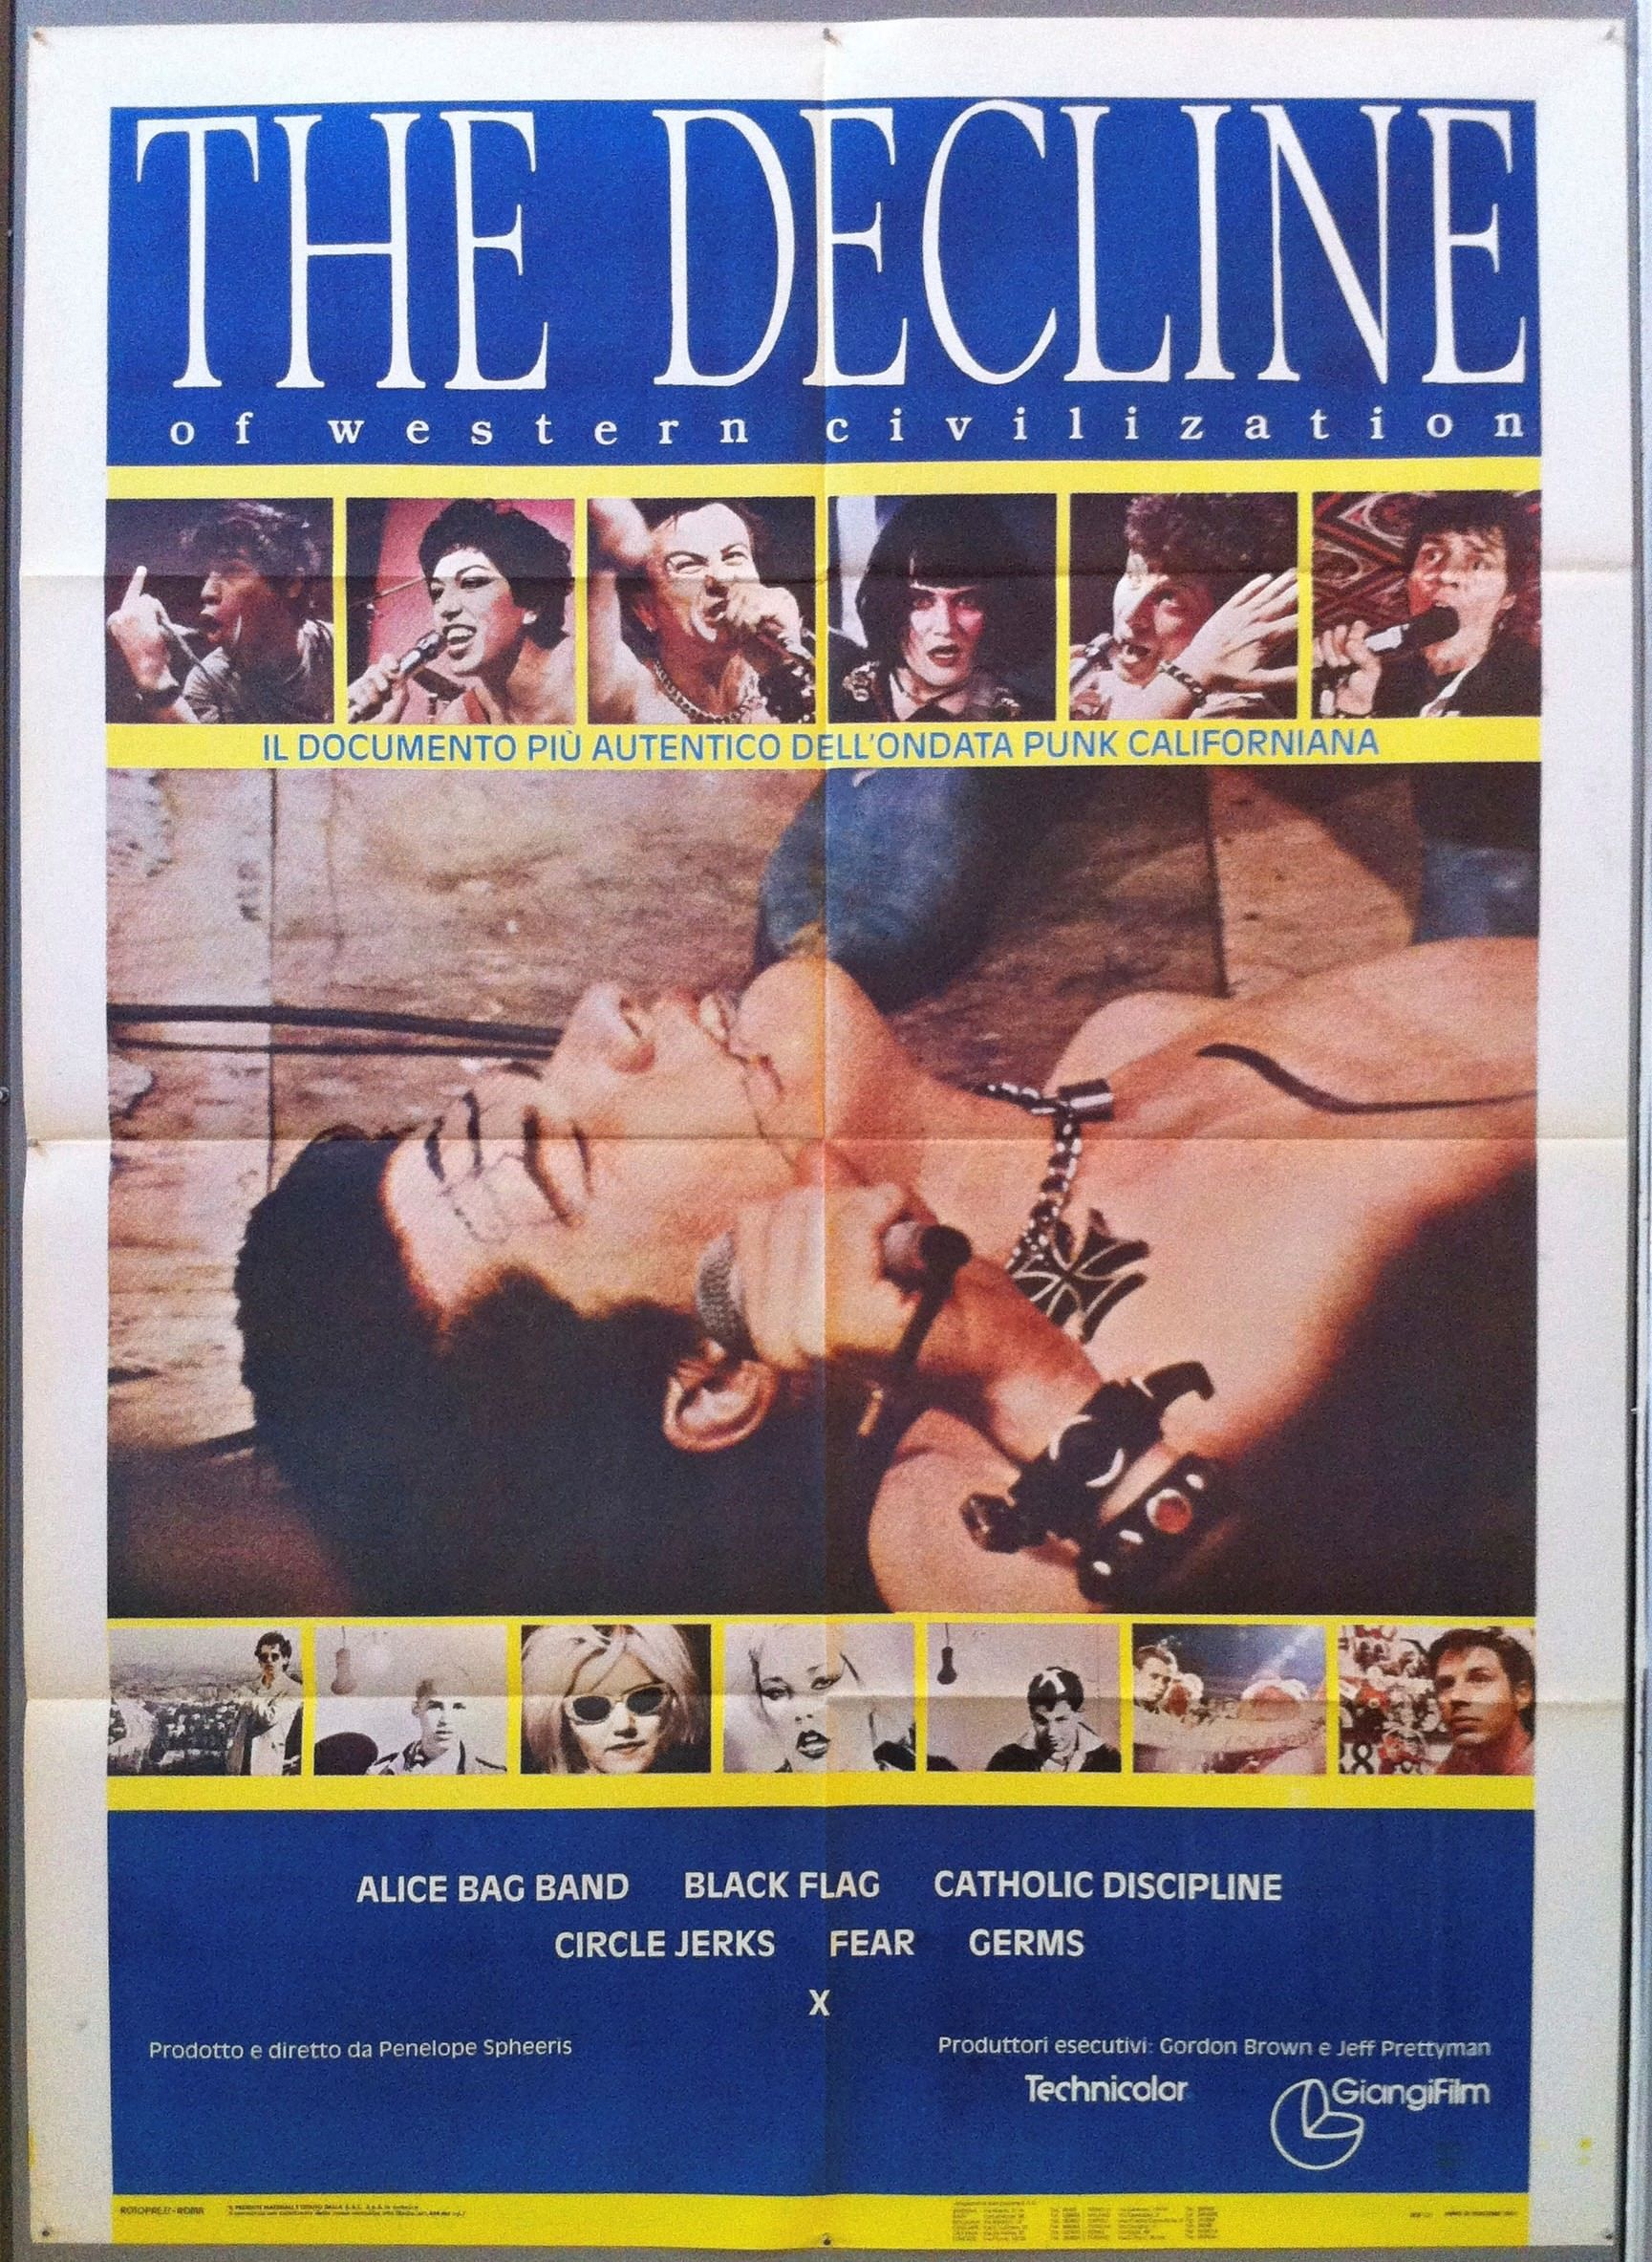 The Decline of Western Civilization (1981) - Directed by: Penelope SpheerisStarring: Alice Bag Band, Black Flag, Catholic Discipline, Circle Jerks, Fear, The Germs, XRated: NR (Suggested R for Pervasive Language and Real Depictions of Destructive Behavior)Running Time: 1 h 40 mTMM Score: 4.5 stars out of 5STRENGTHS: Story, DirectionWEAKNESSES: Nihilistic View, Content